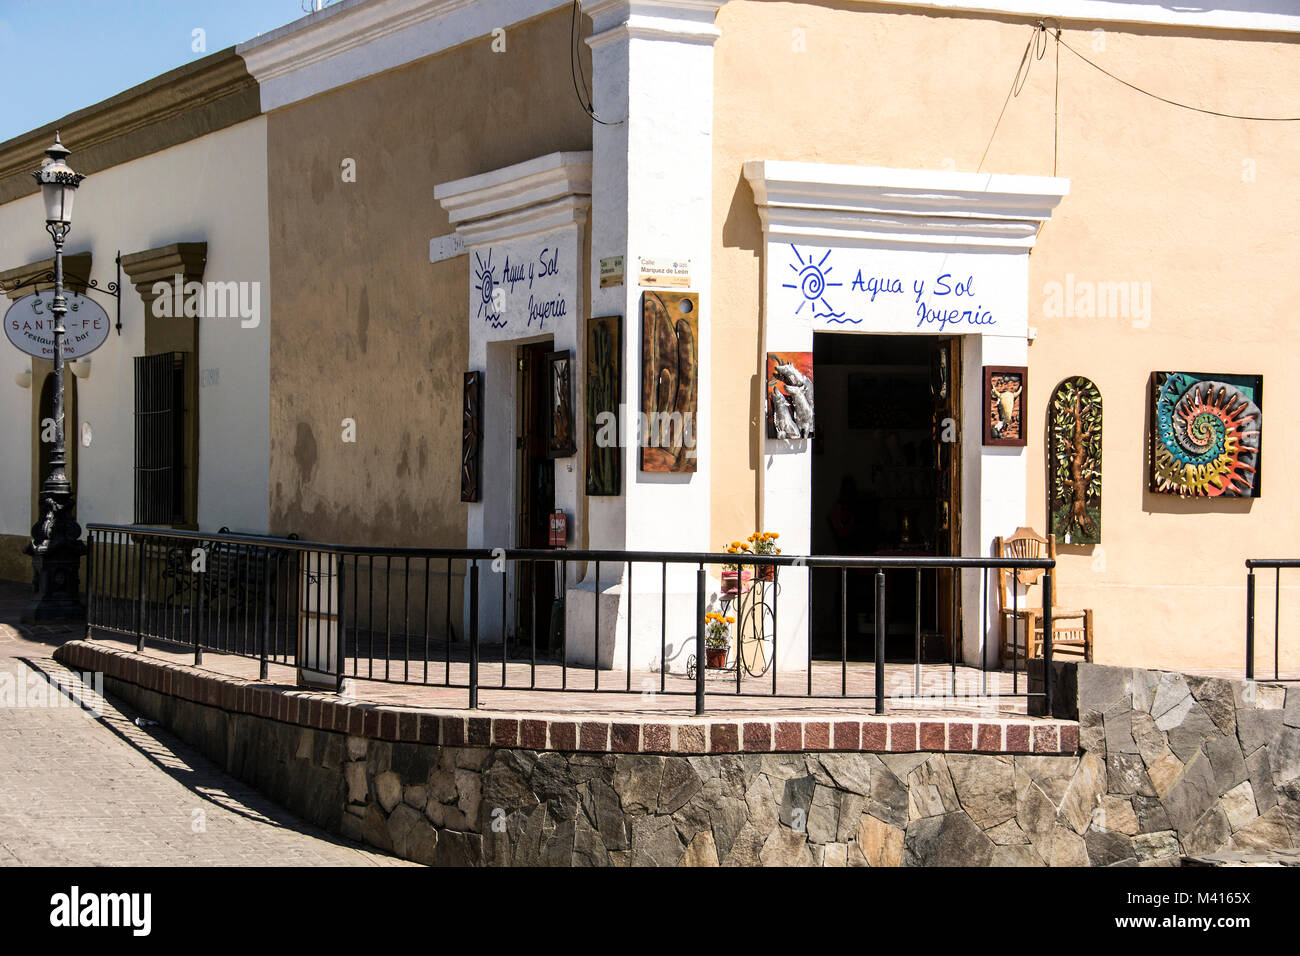 A store on a corner selling art and related items. Todos Santos, Baja California Sur, Mexico - Stock Image